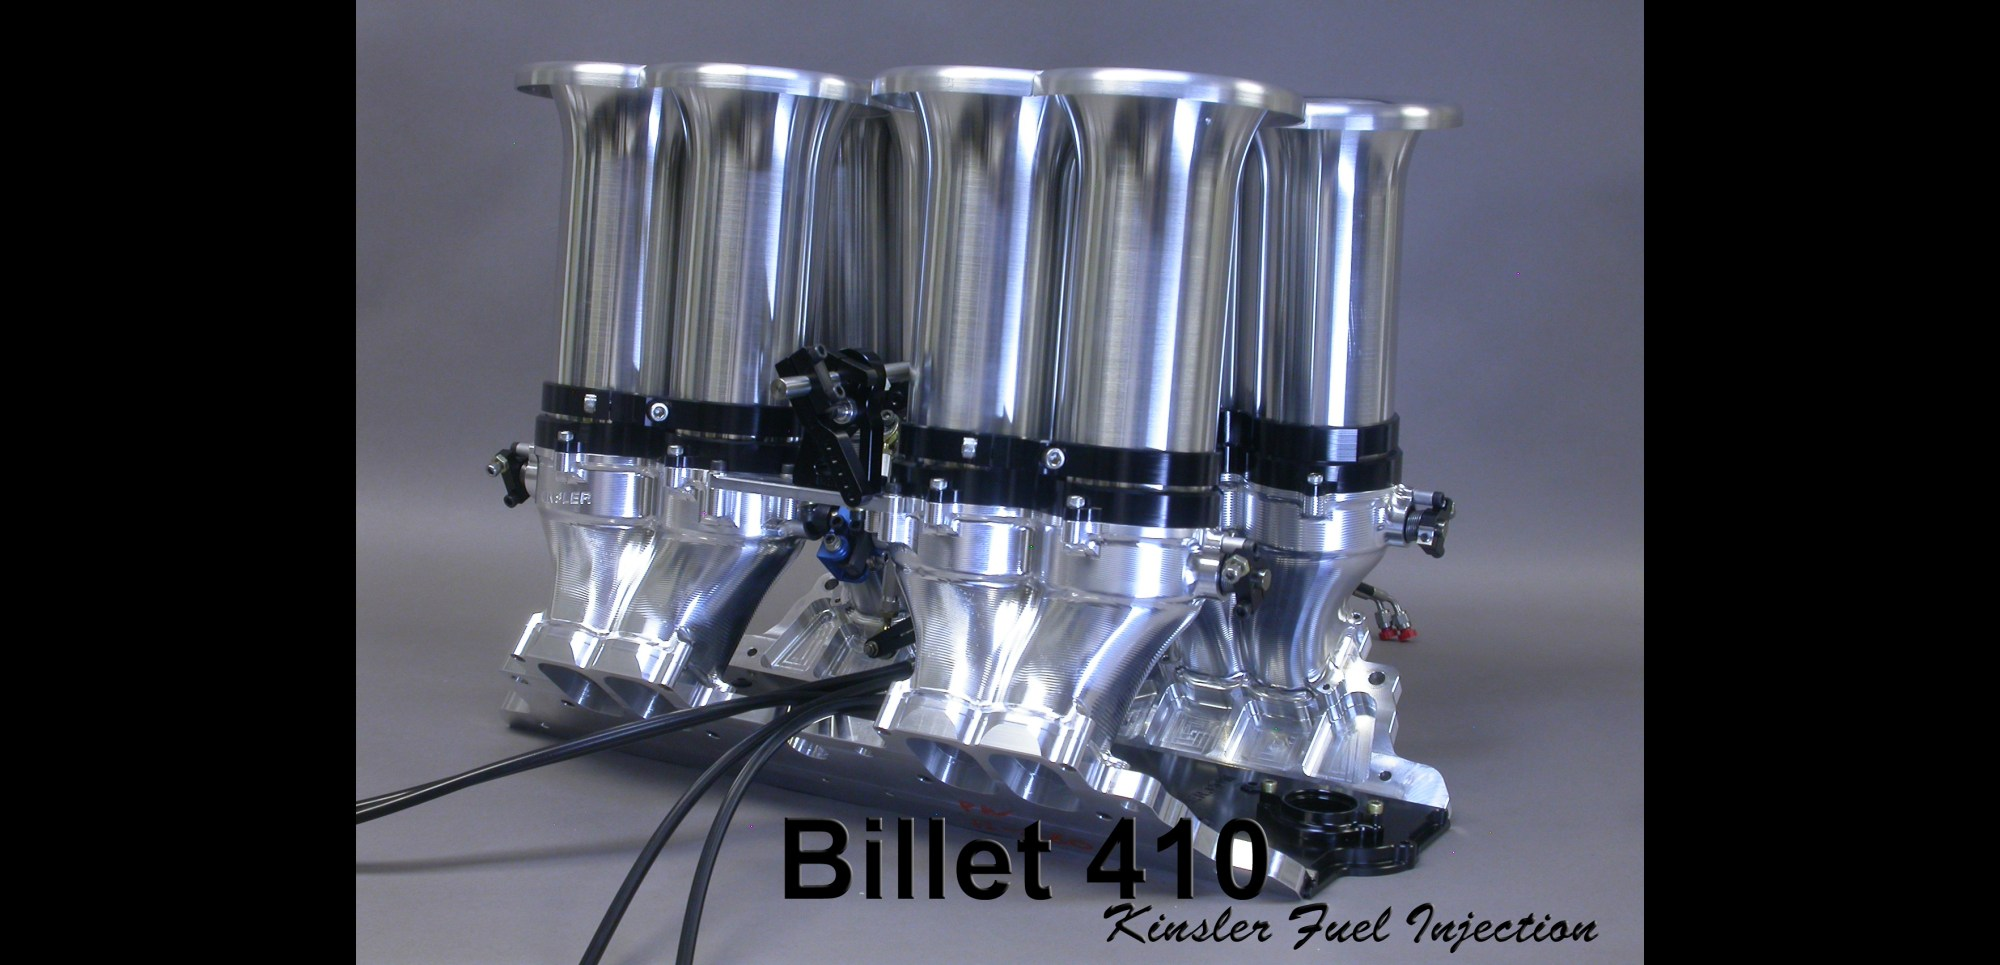 hight resolution of kinsler billet 410 intake manifold for small block chev ford etc